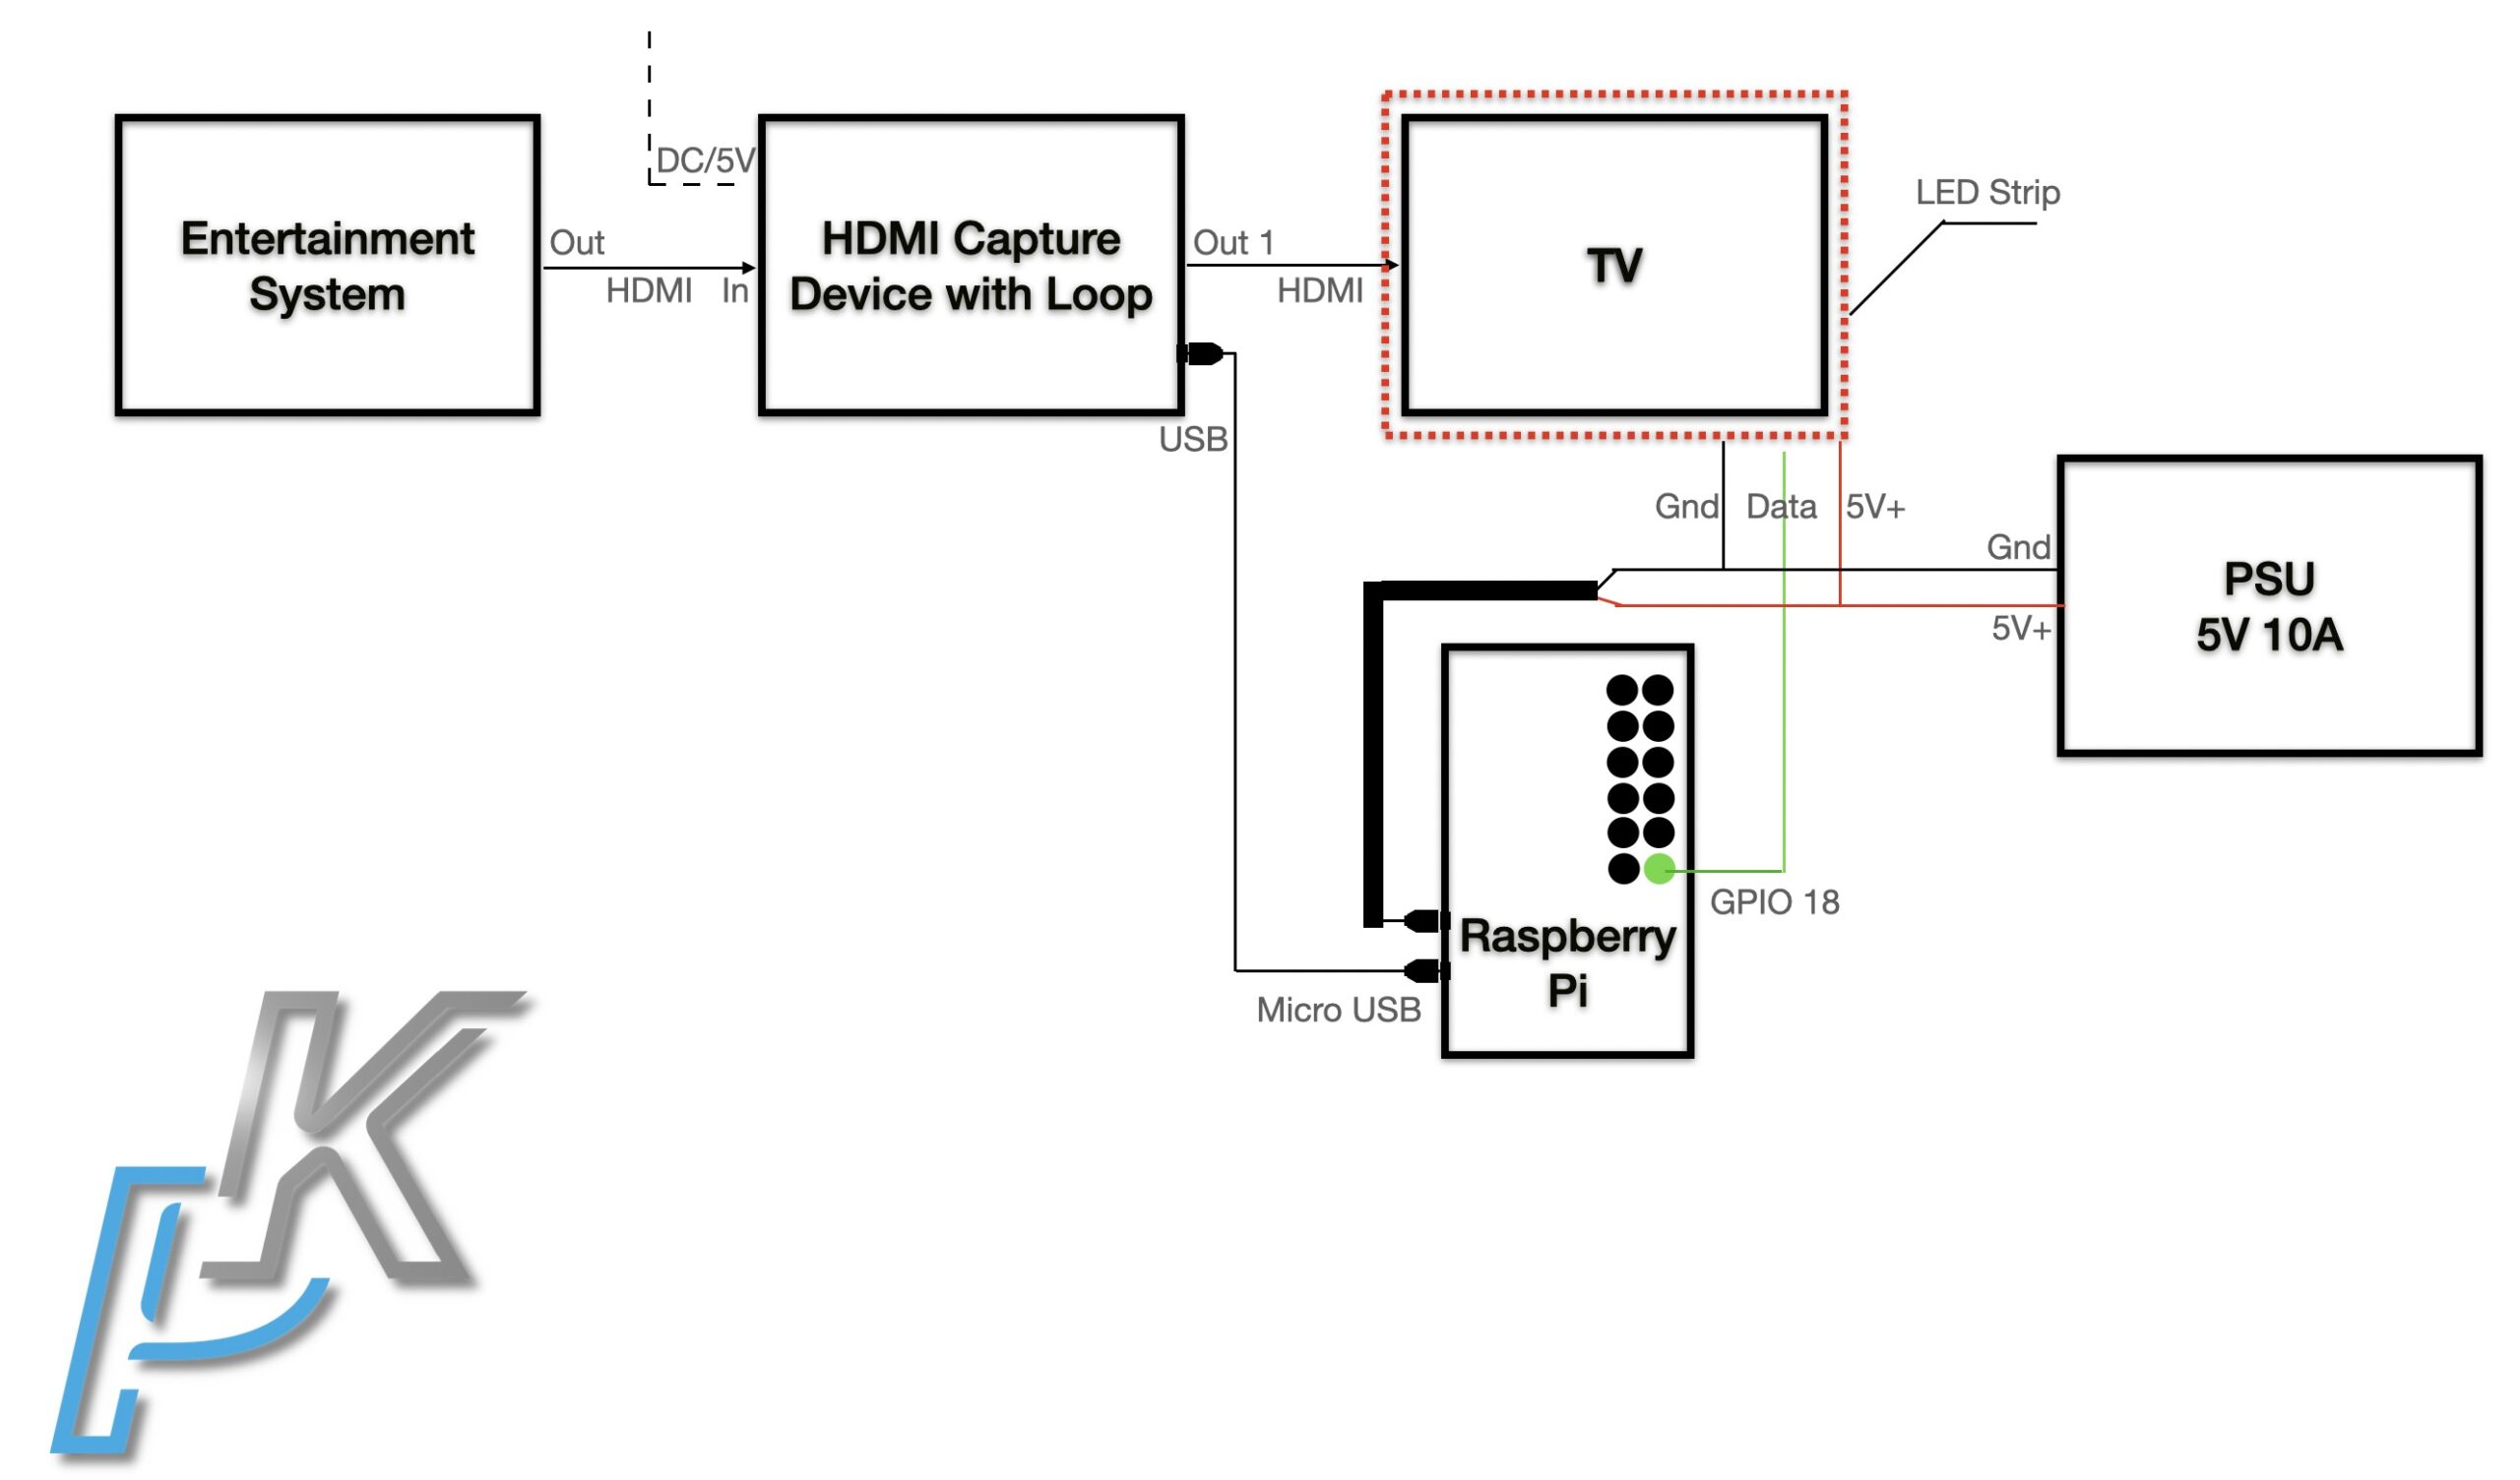 Full TV ambient light scheme describing how to connect your Entertainment System to the HDMI capture device, your TV as well as the Raspberry Pi and the LED strip and Power Supply.